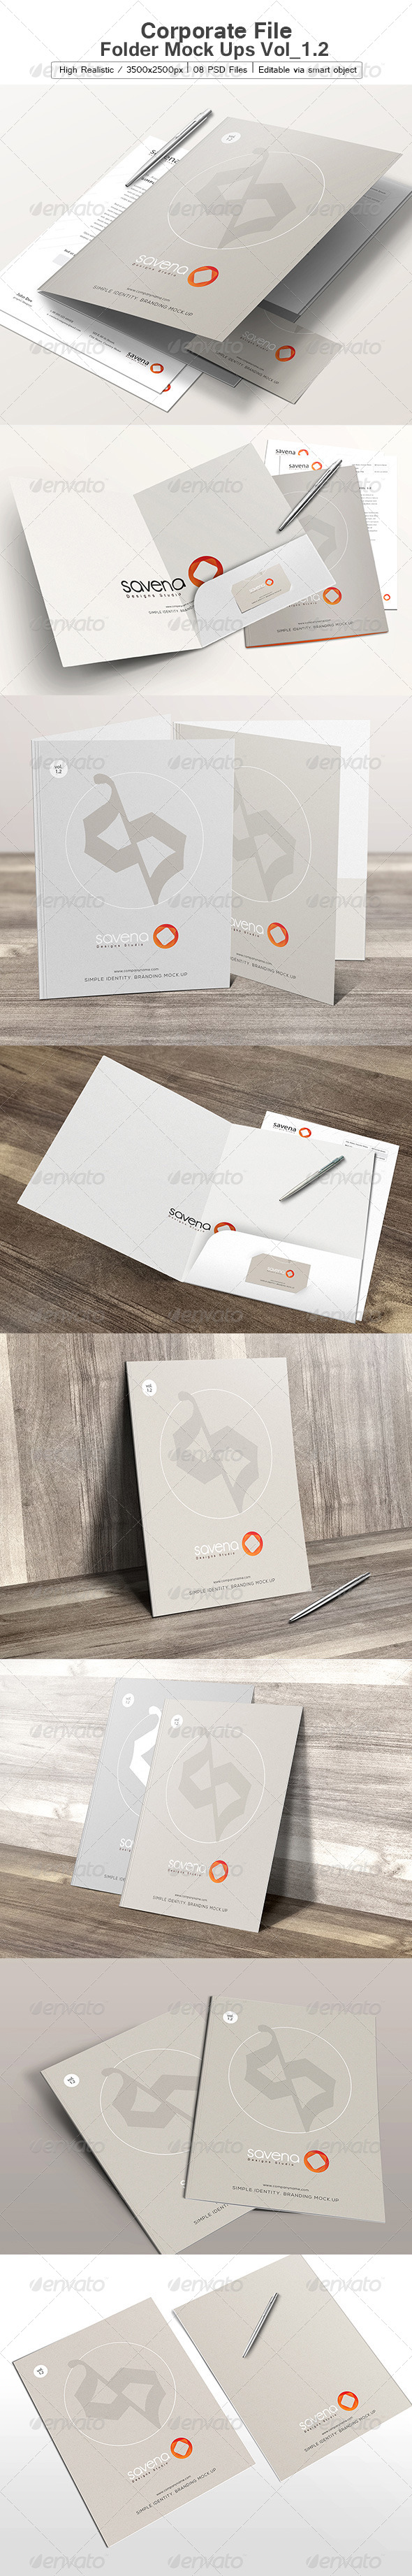 GraphicRiver Corporate File Folder Mock Ups Vol 1.2 6577388